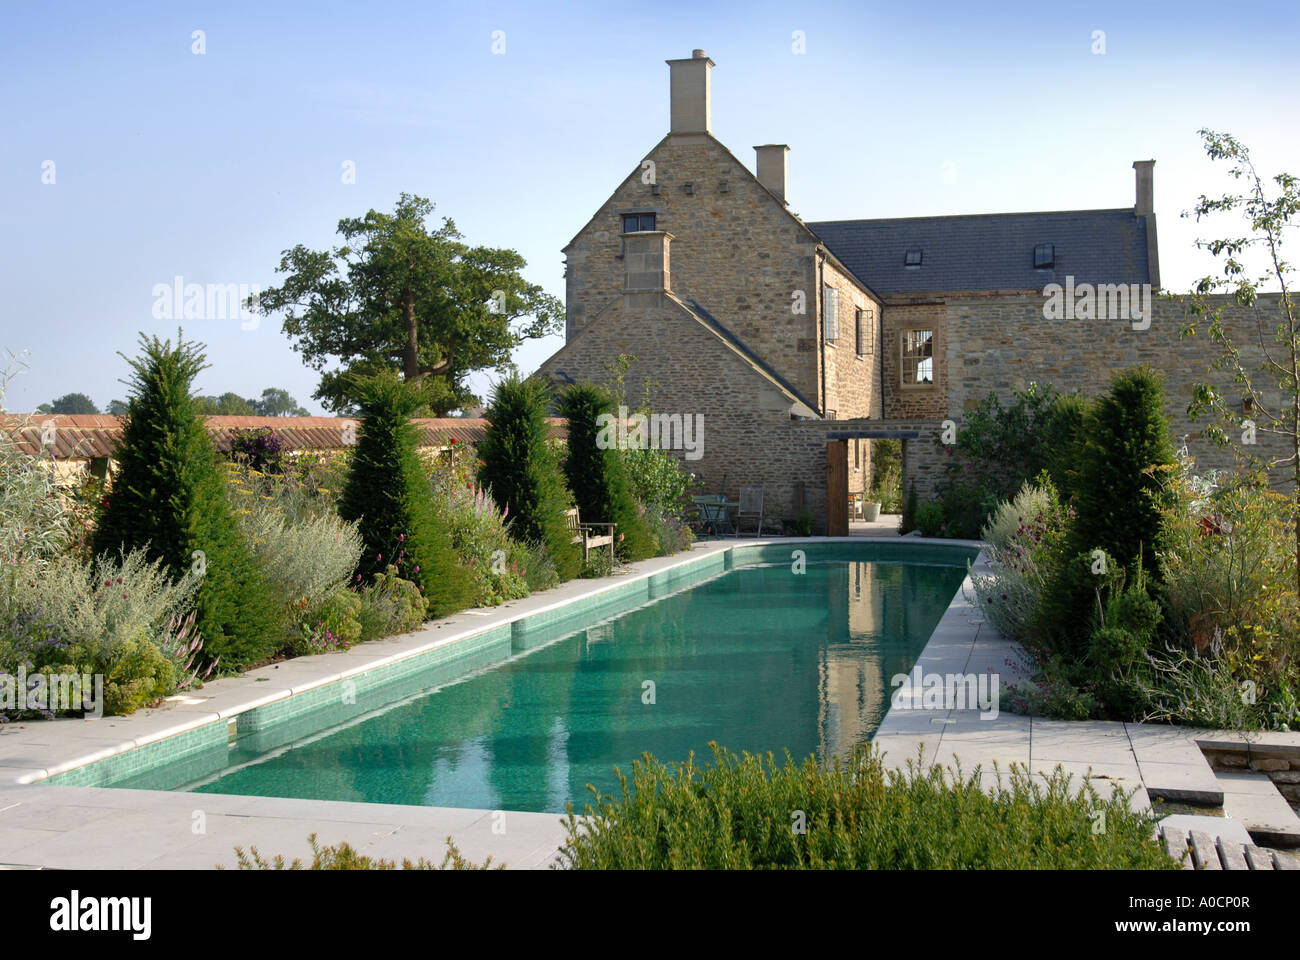 A LUXURY SWIMMING POOL IN THE GARDEN OF LARGE COUNTRY HOUSE WILTSHIRE UK